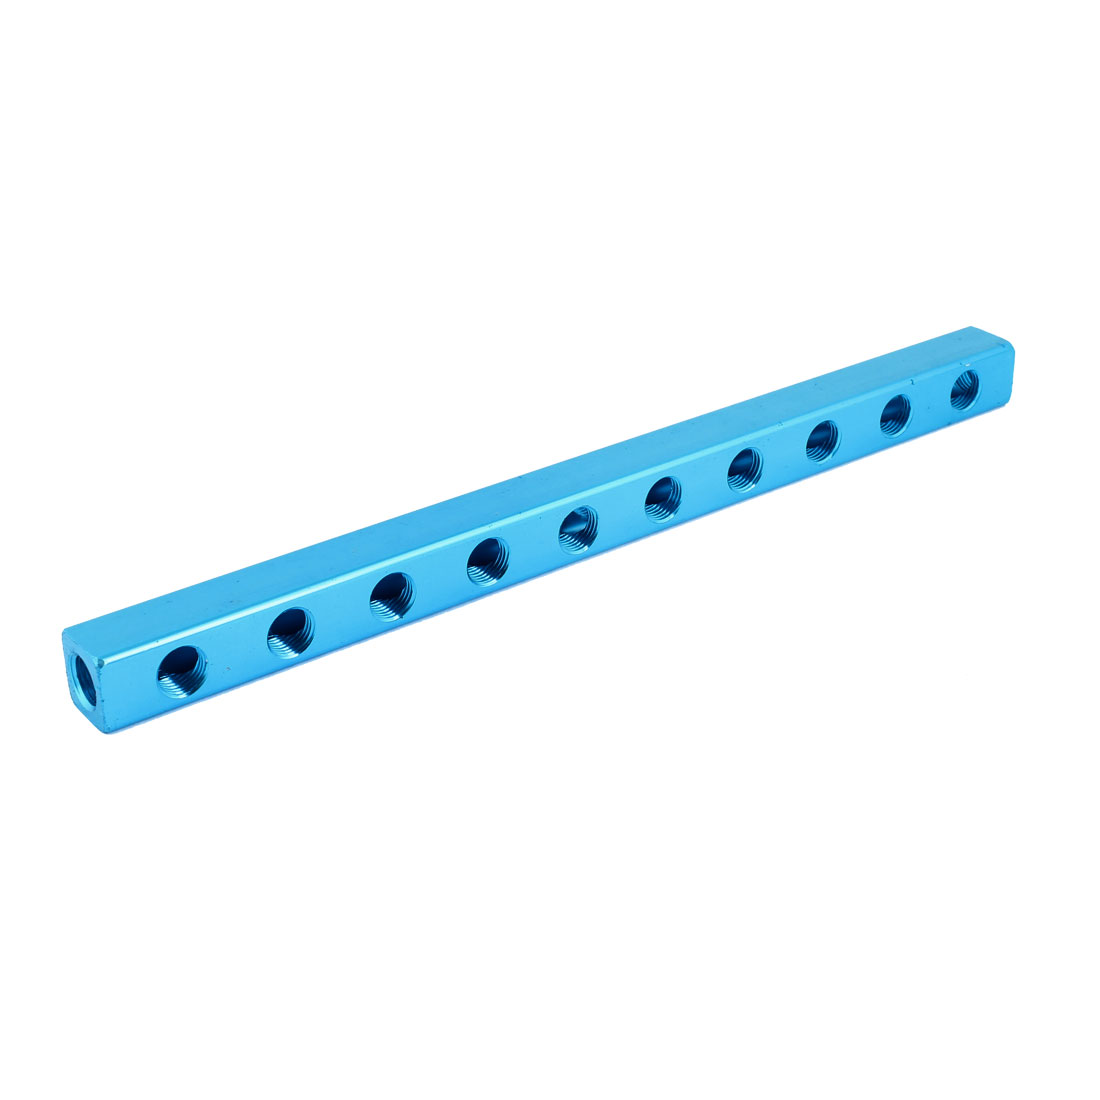 "Blue Aluminium Air Pneumatic 10 Way 13 Ports Manifold Block Splitter 1/4""PT"